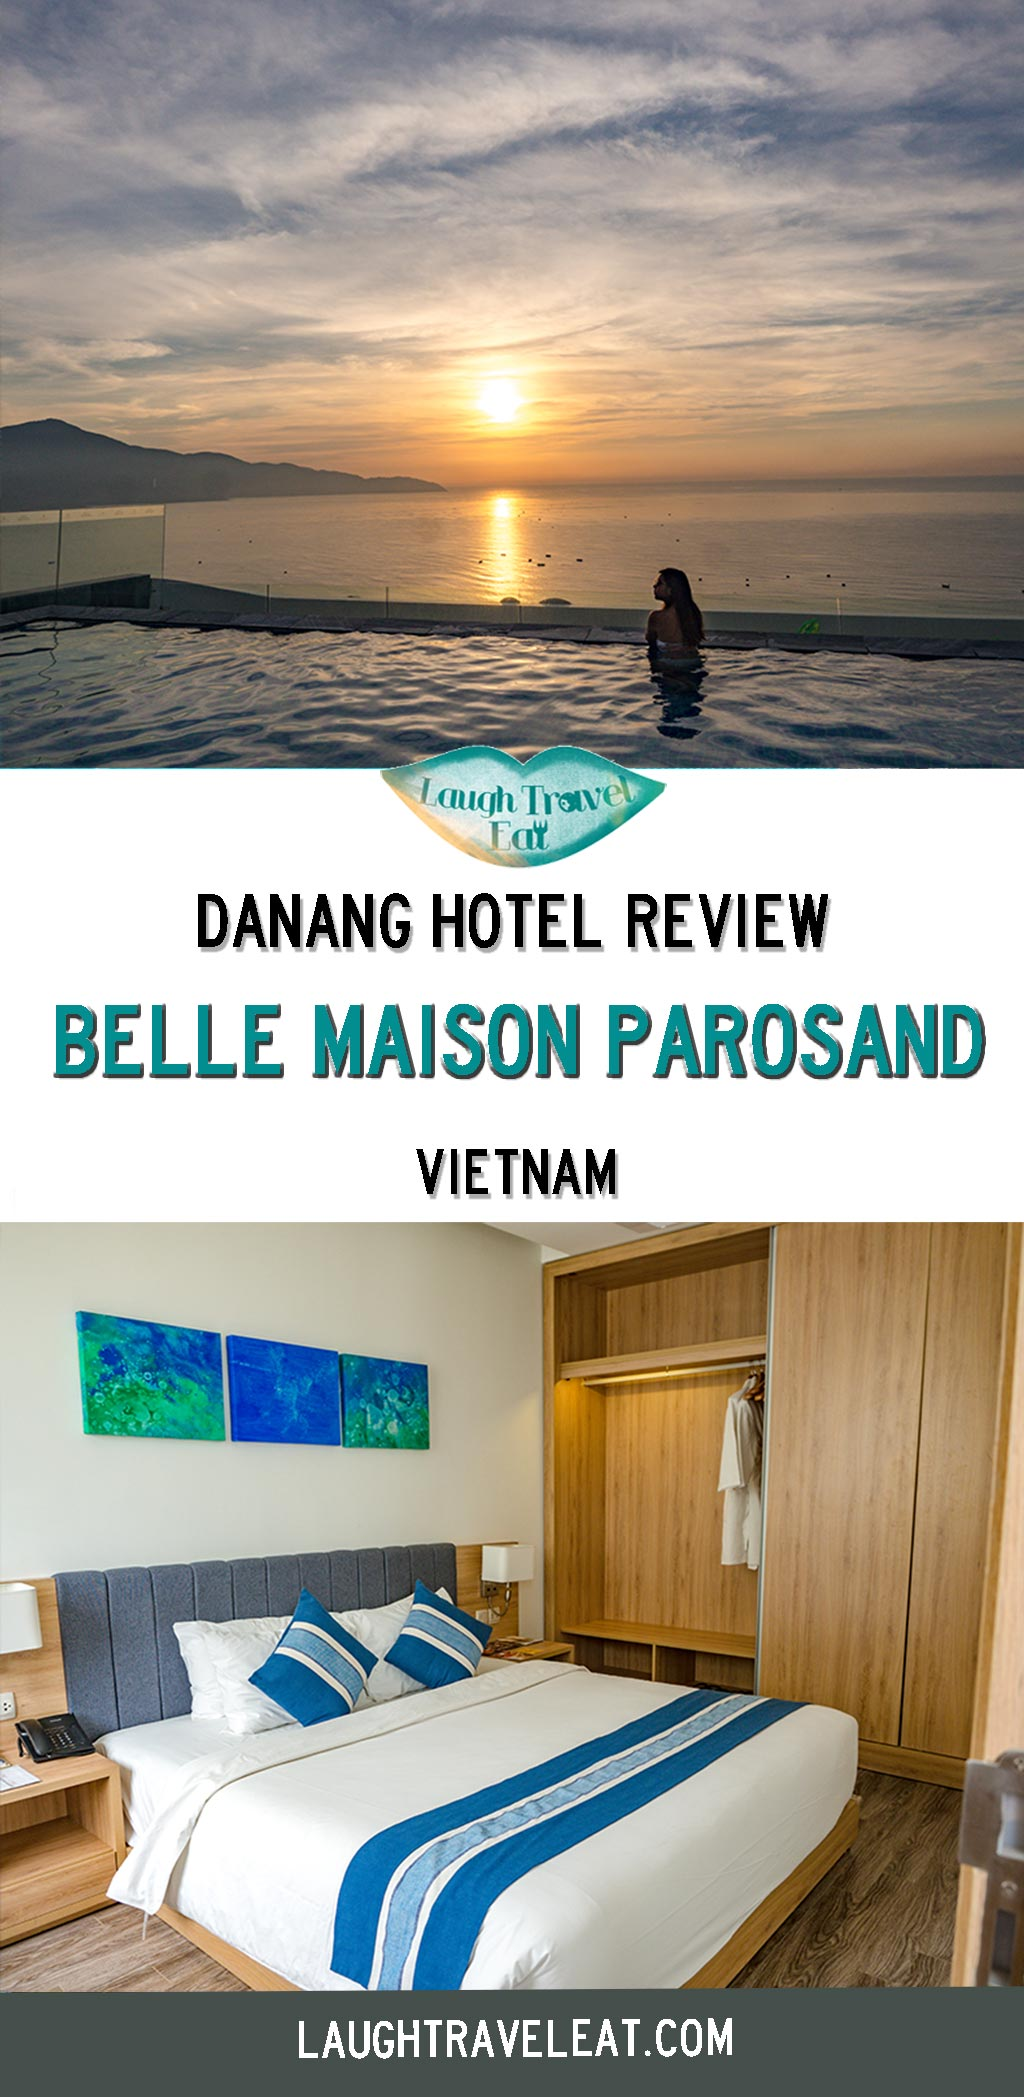 Belle Maison Parosand Danang and Belle Maison Hoi An are great choice for your Central Vietnam trip, here are a review of the hotels: